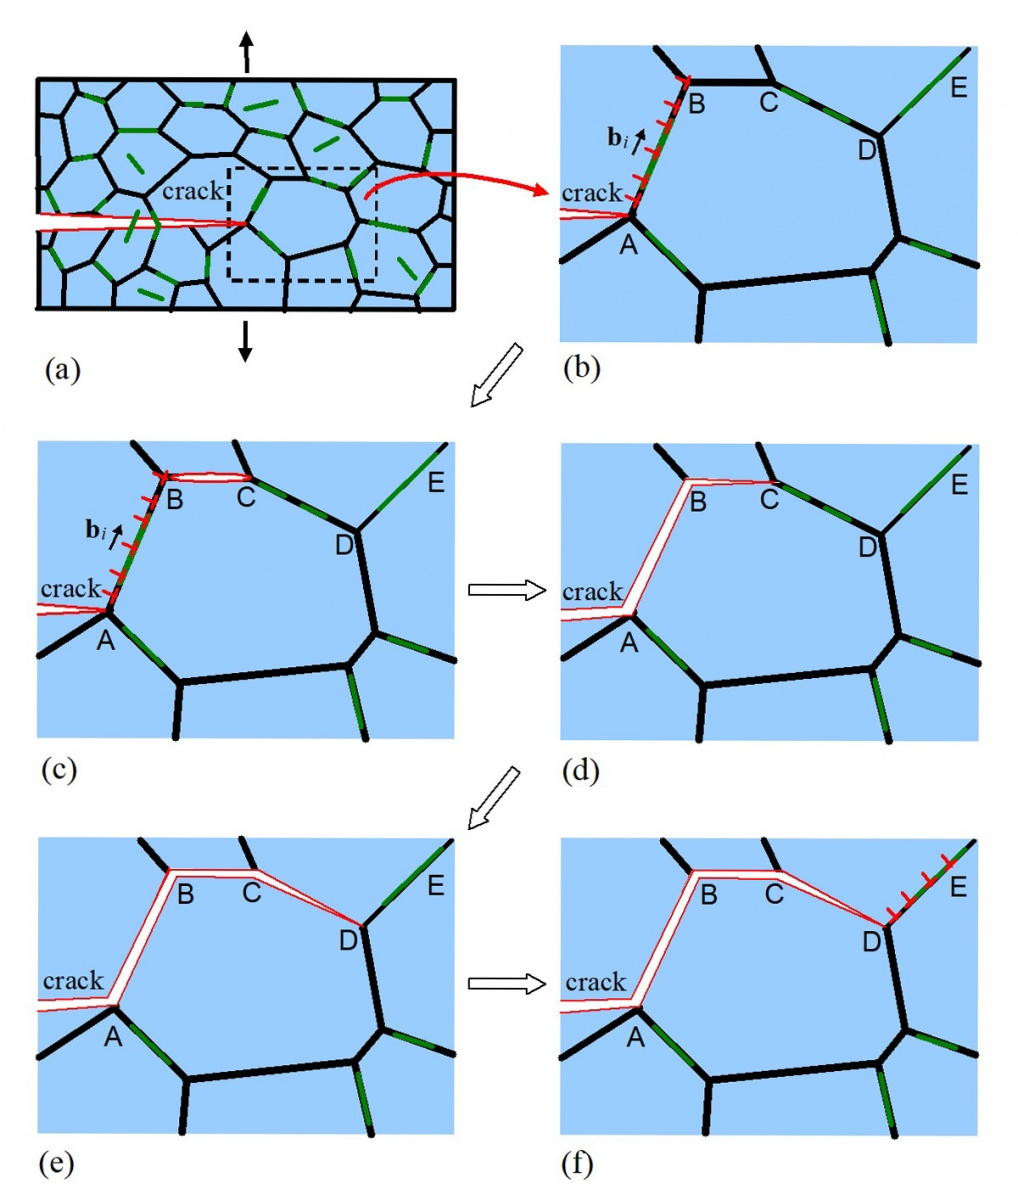 Crack propagation over grain boundaries in the composite. Graphene plates are marked by green lines